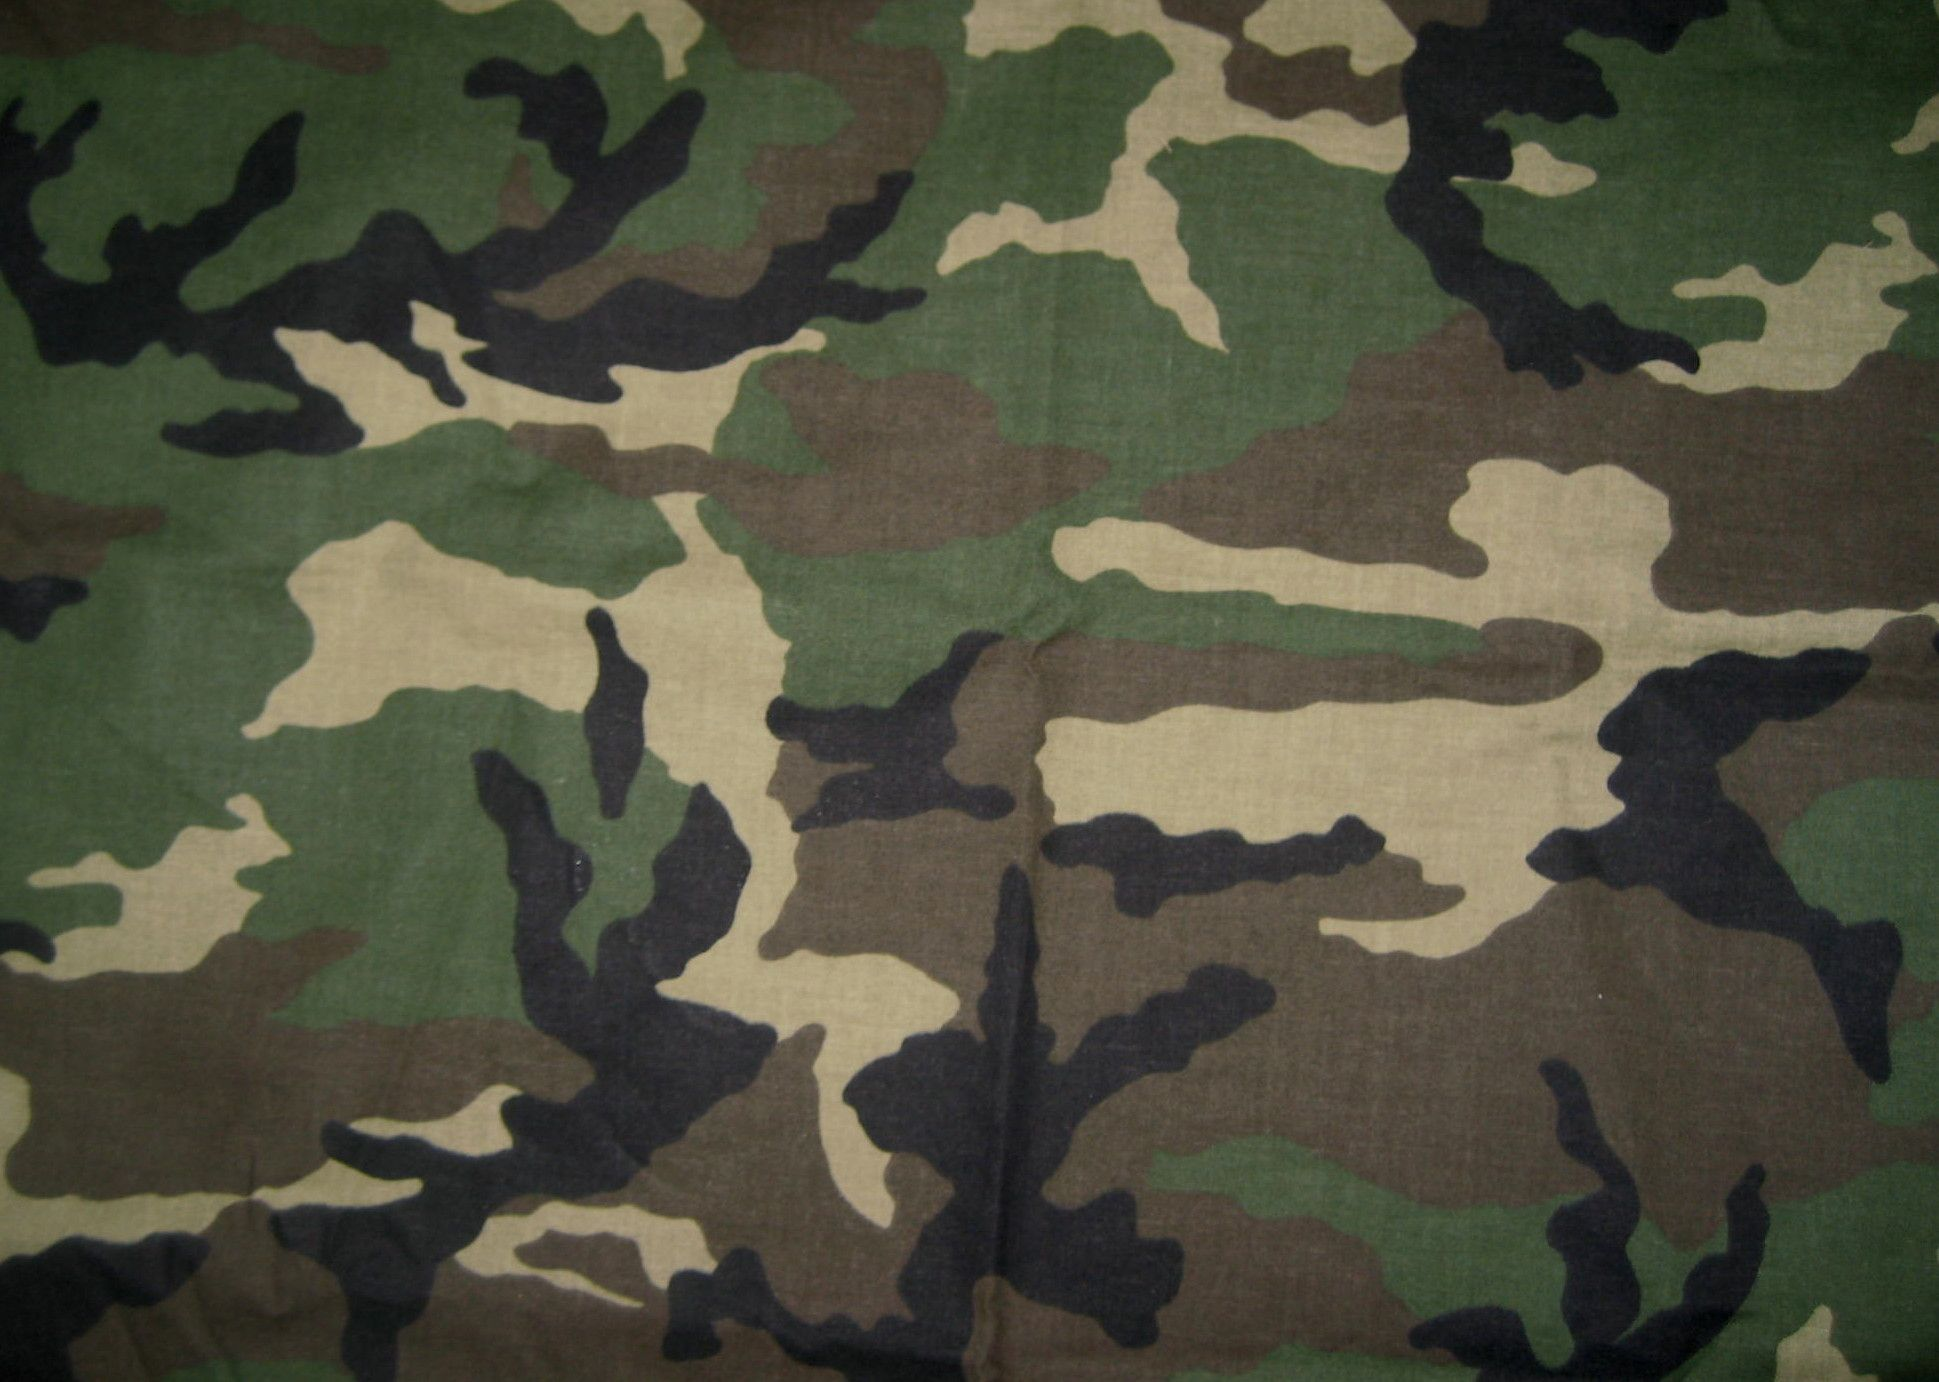 Free Army Camo Wallpaper, Live Army Camo Wallpapers, CBE89 Army